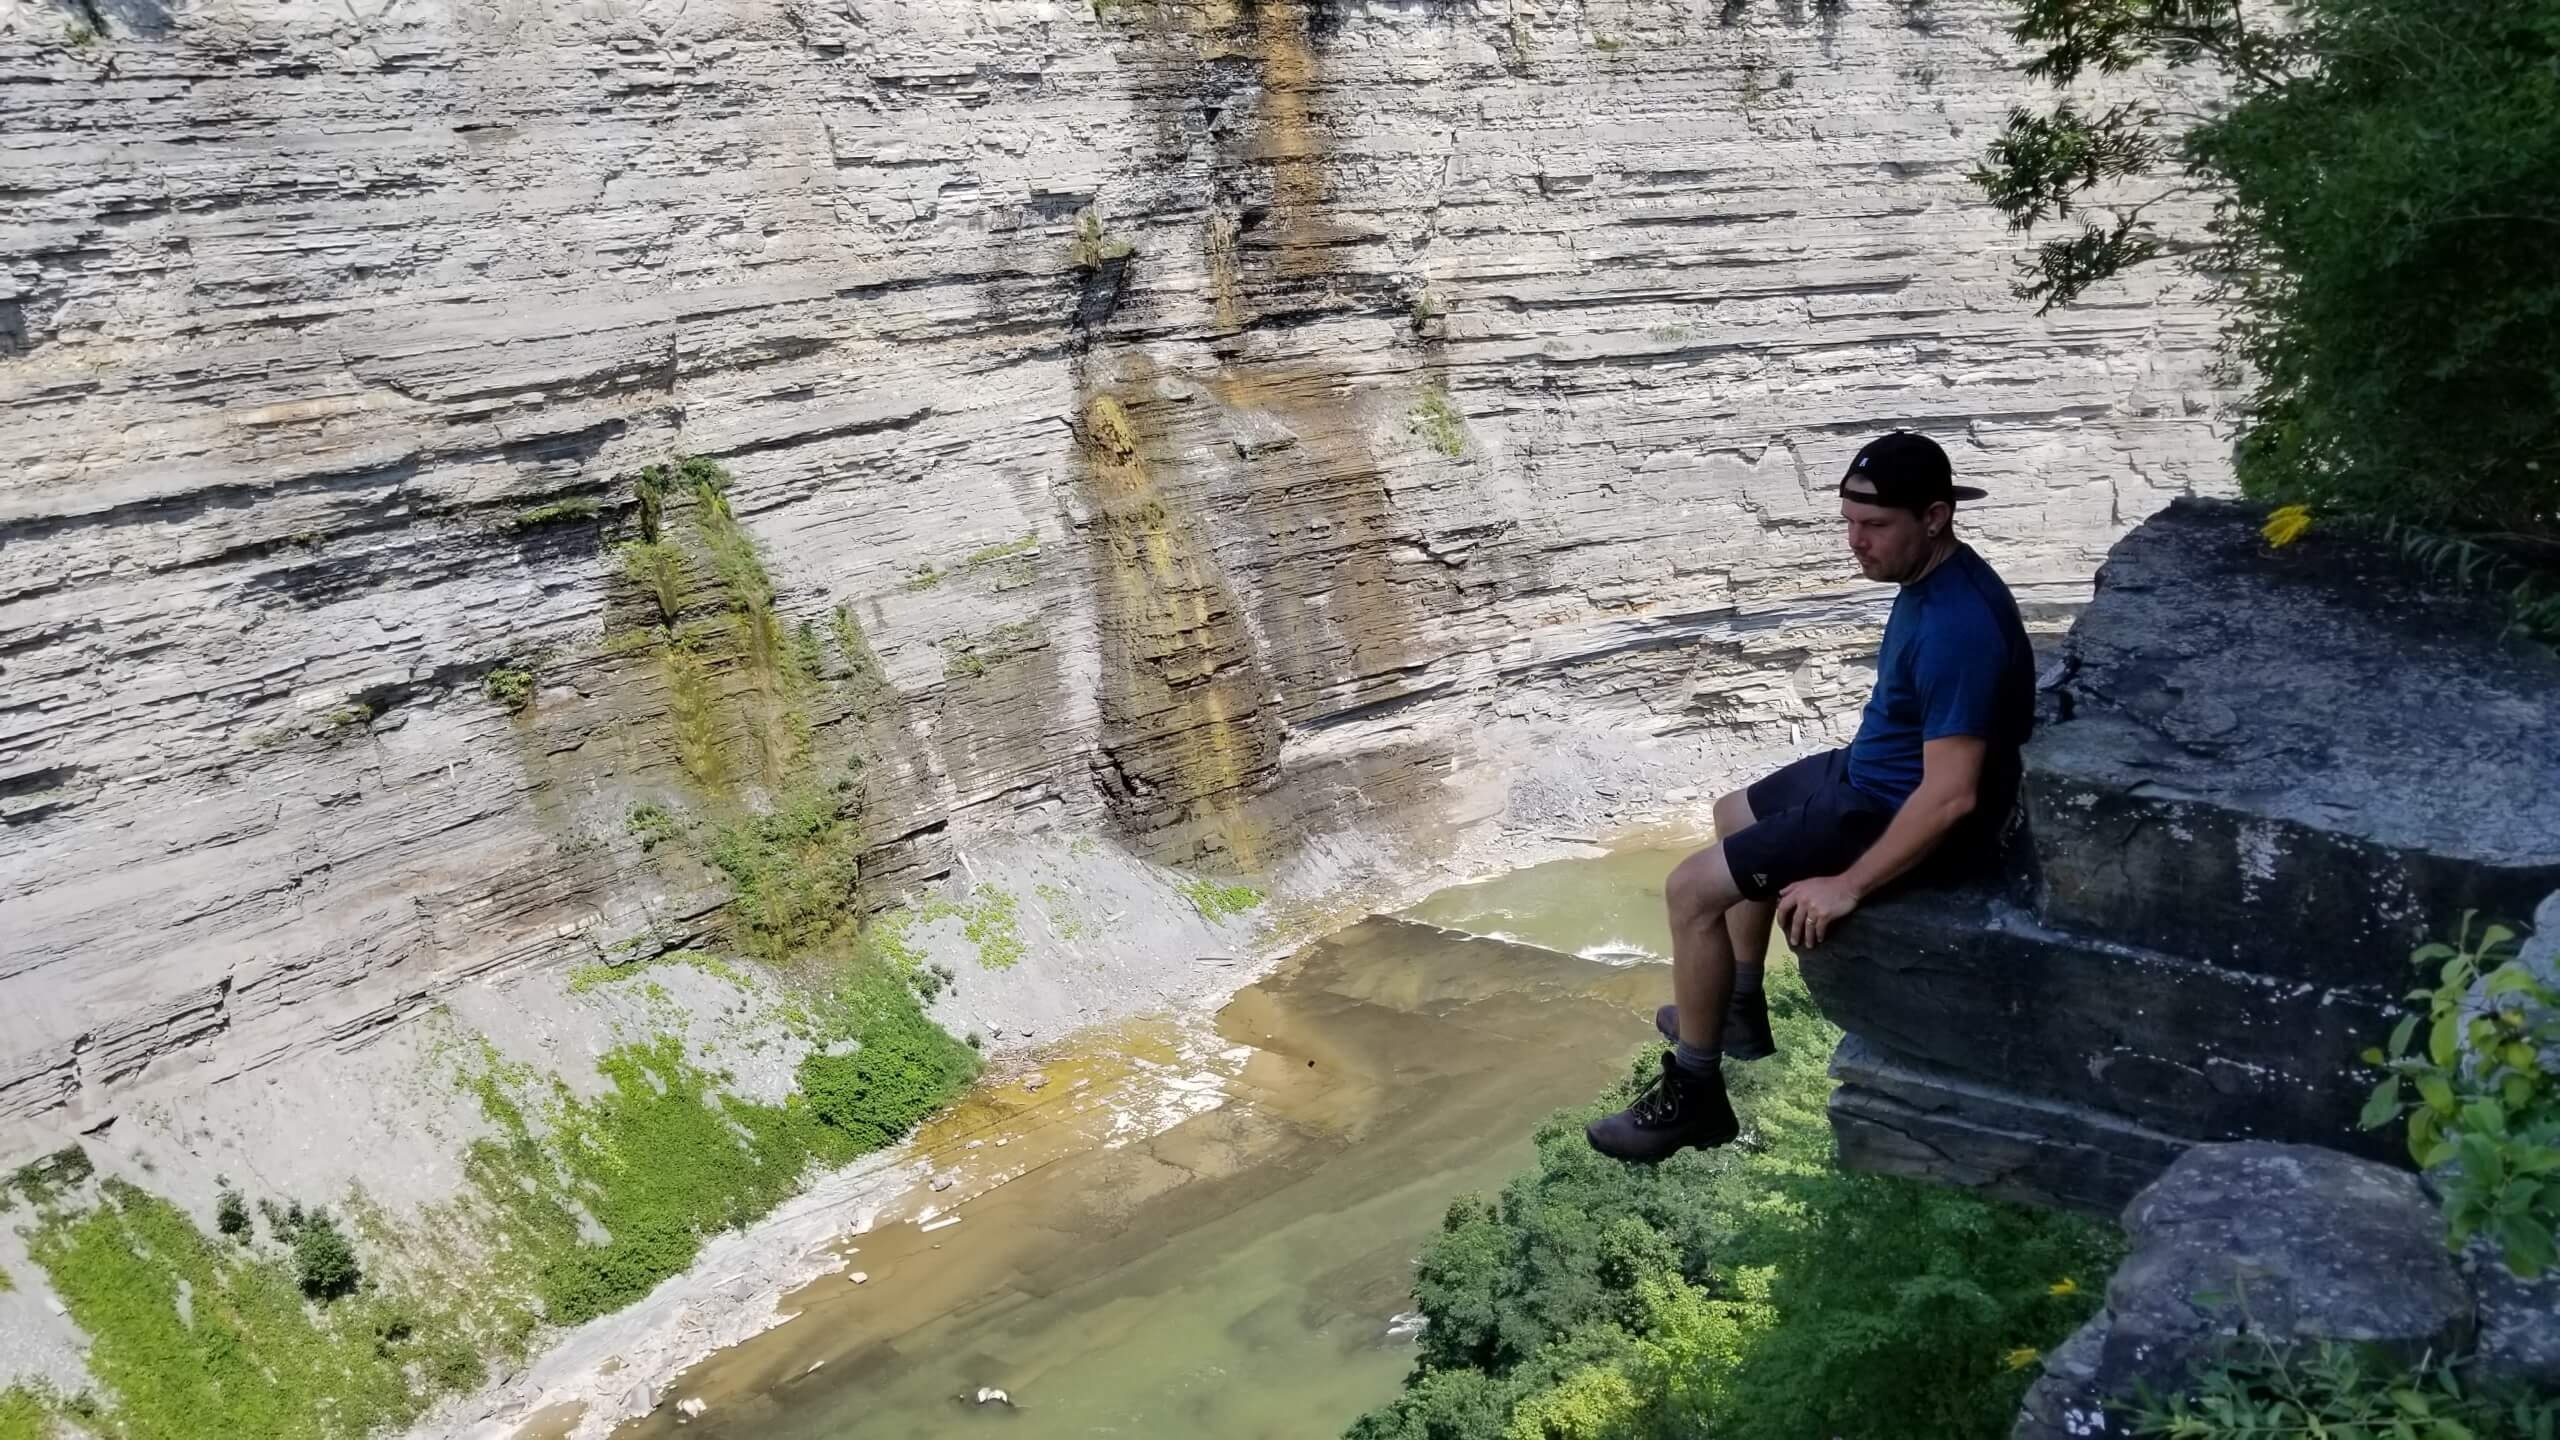 Dennis sitting on high Ledge over river